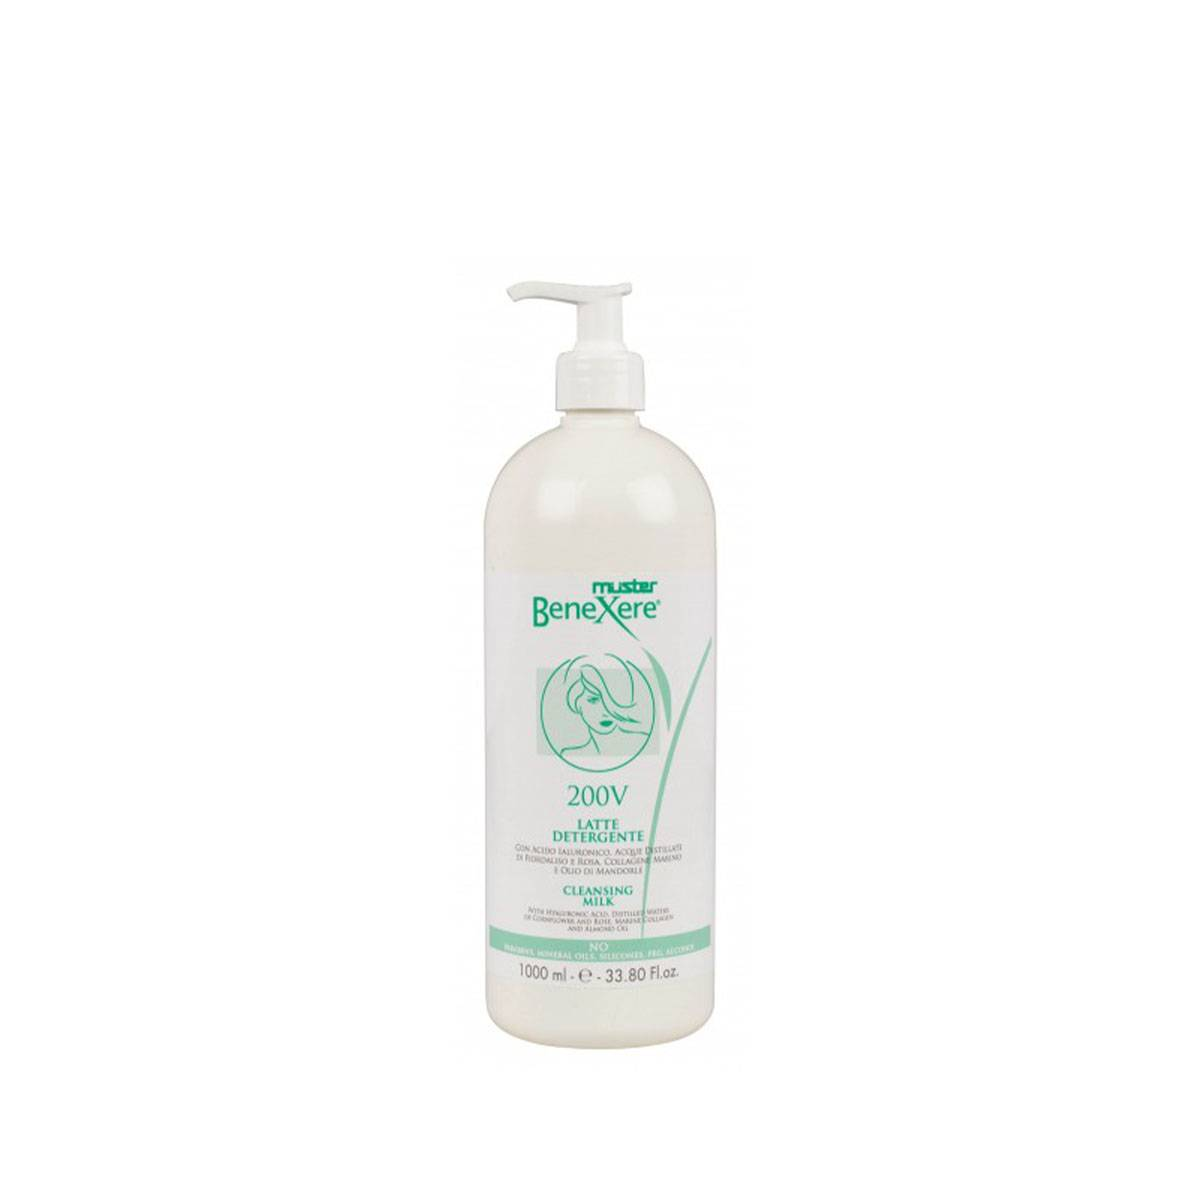 200v Latte Detergente 1000ml Cleansing Milk